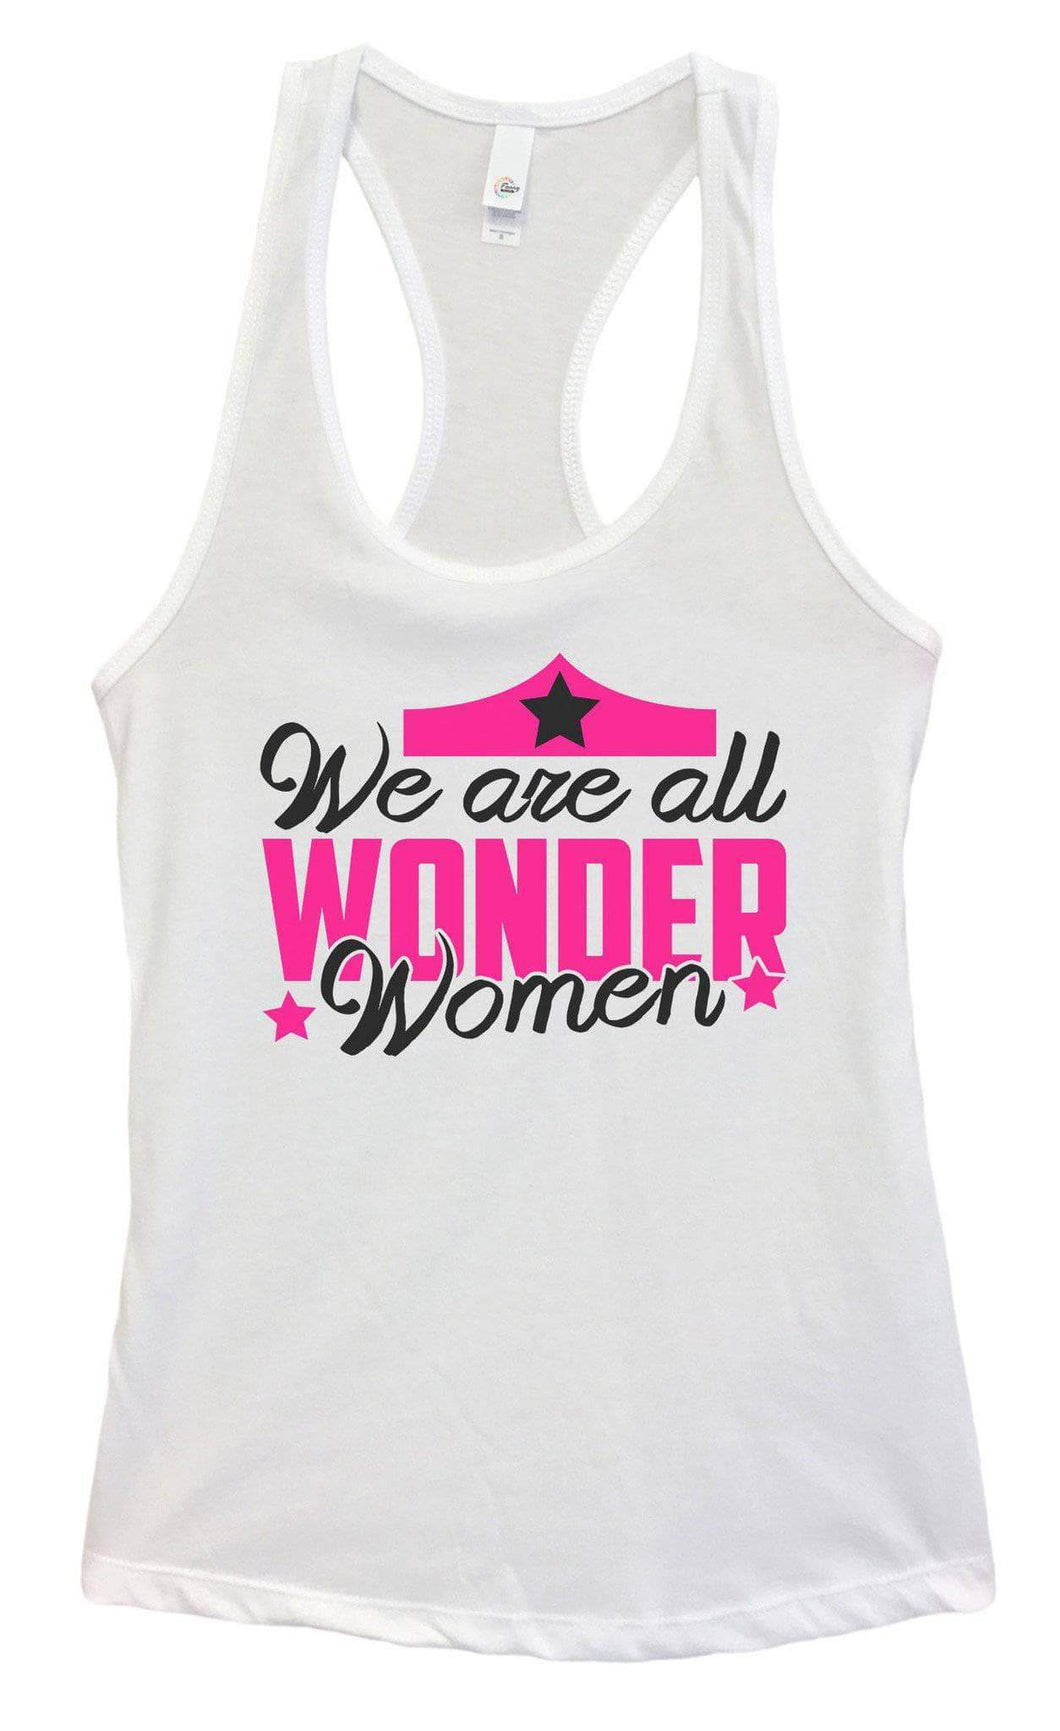 Womens We Are All Wonder Women Grapahic Design Fitted Tank Top Small Womens Tank Tops White